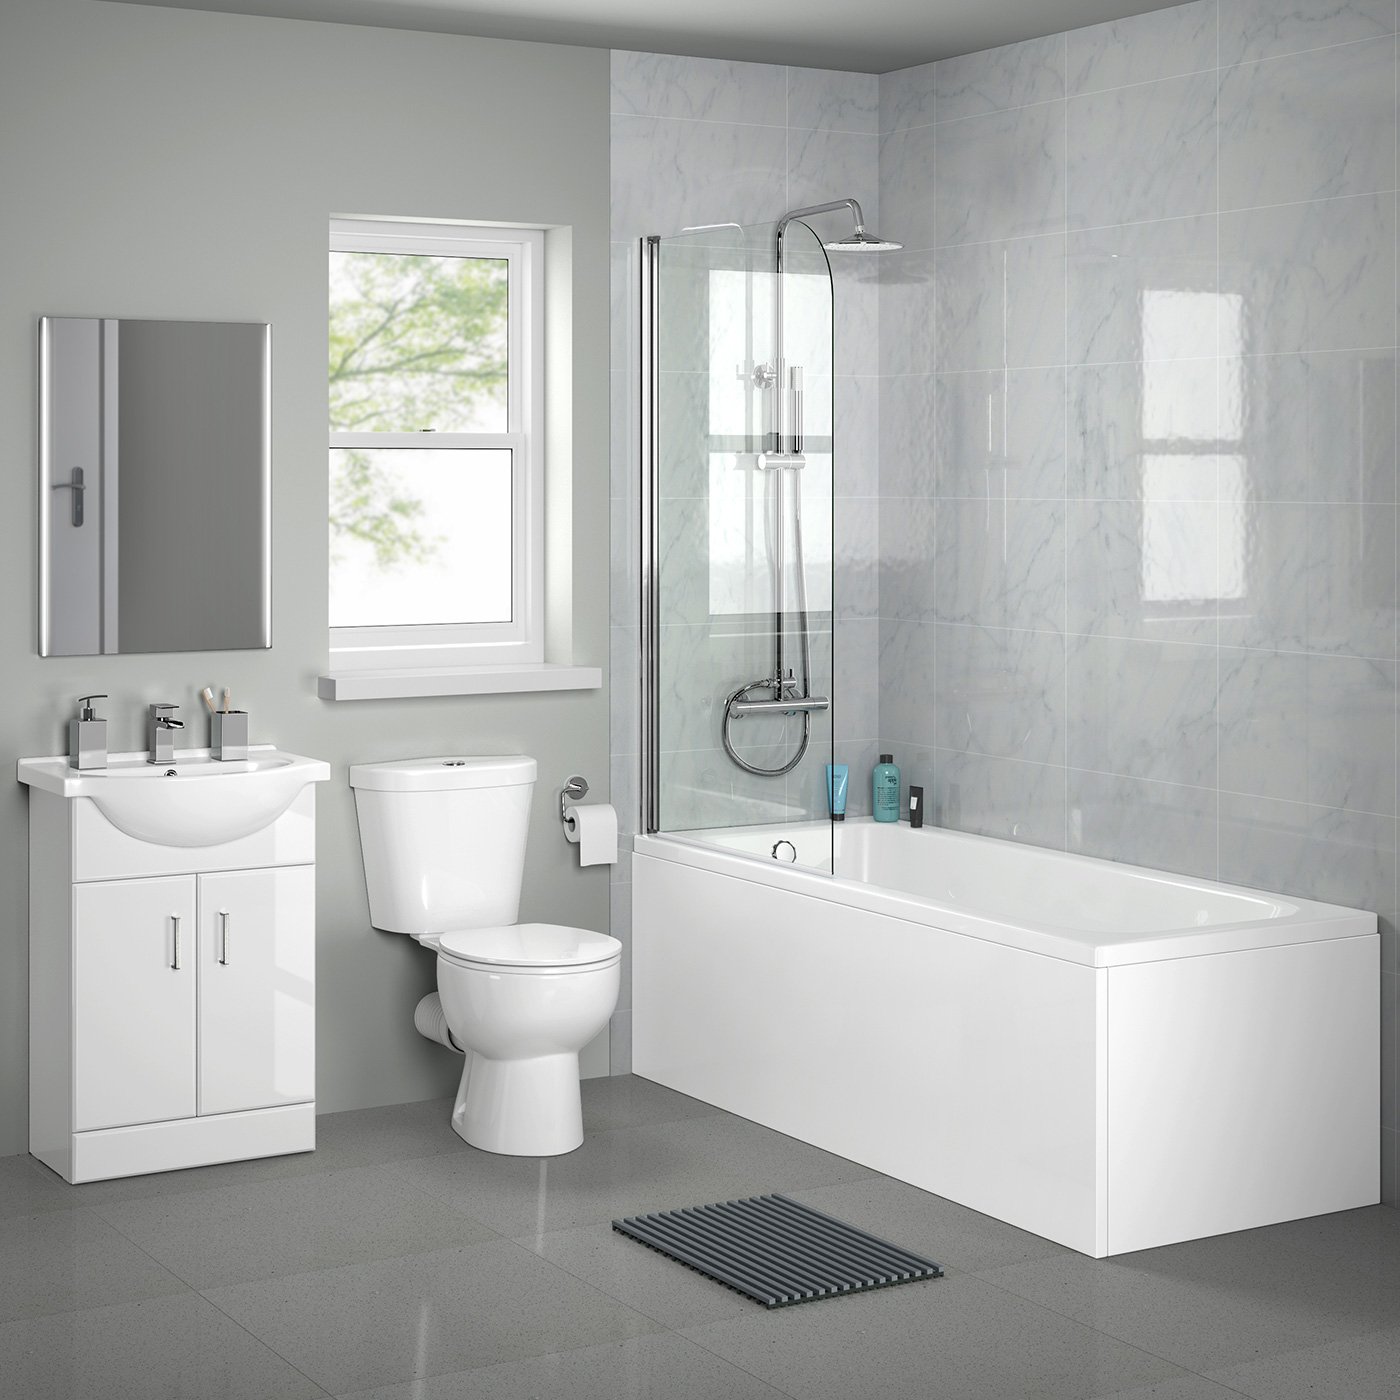 Bathroom Suites & Accessories | Woodhouse & Sturnham Ltd ...